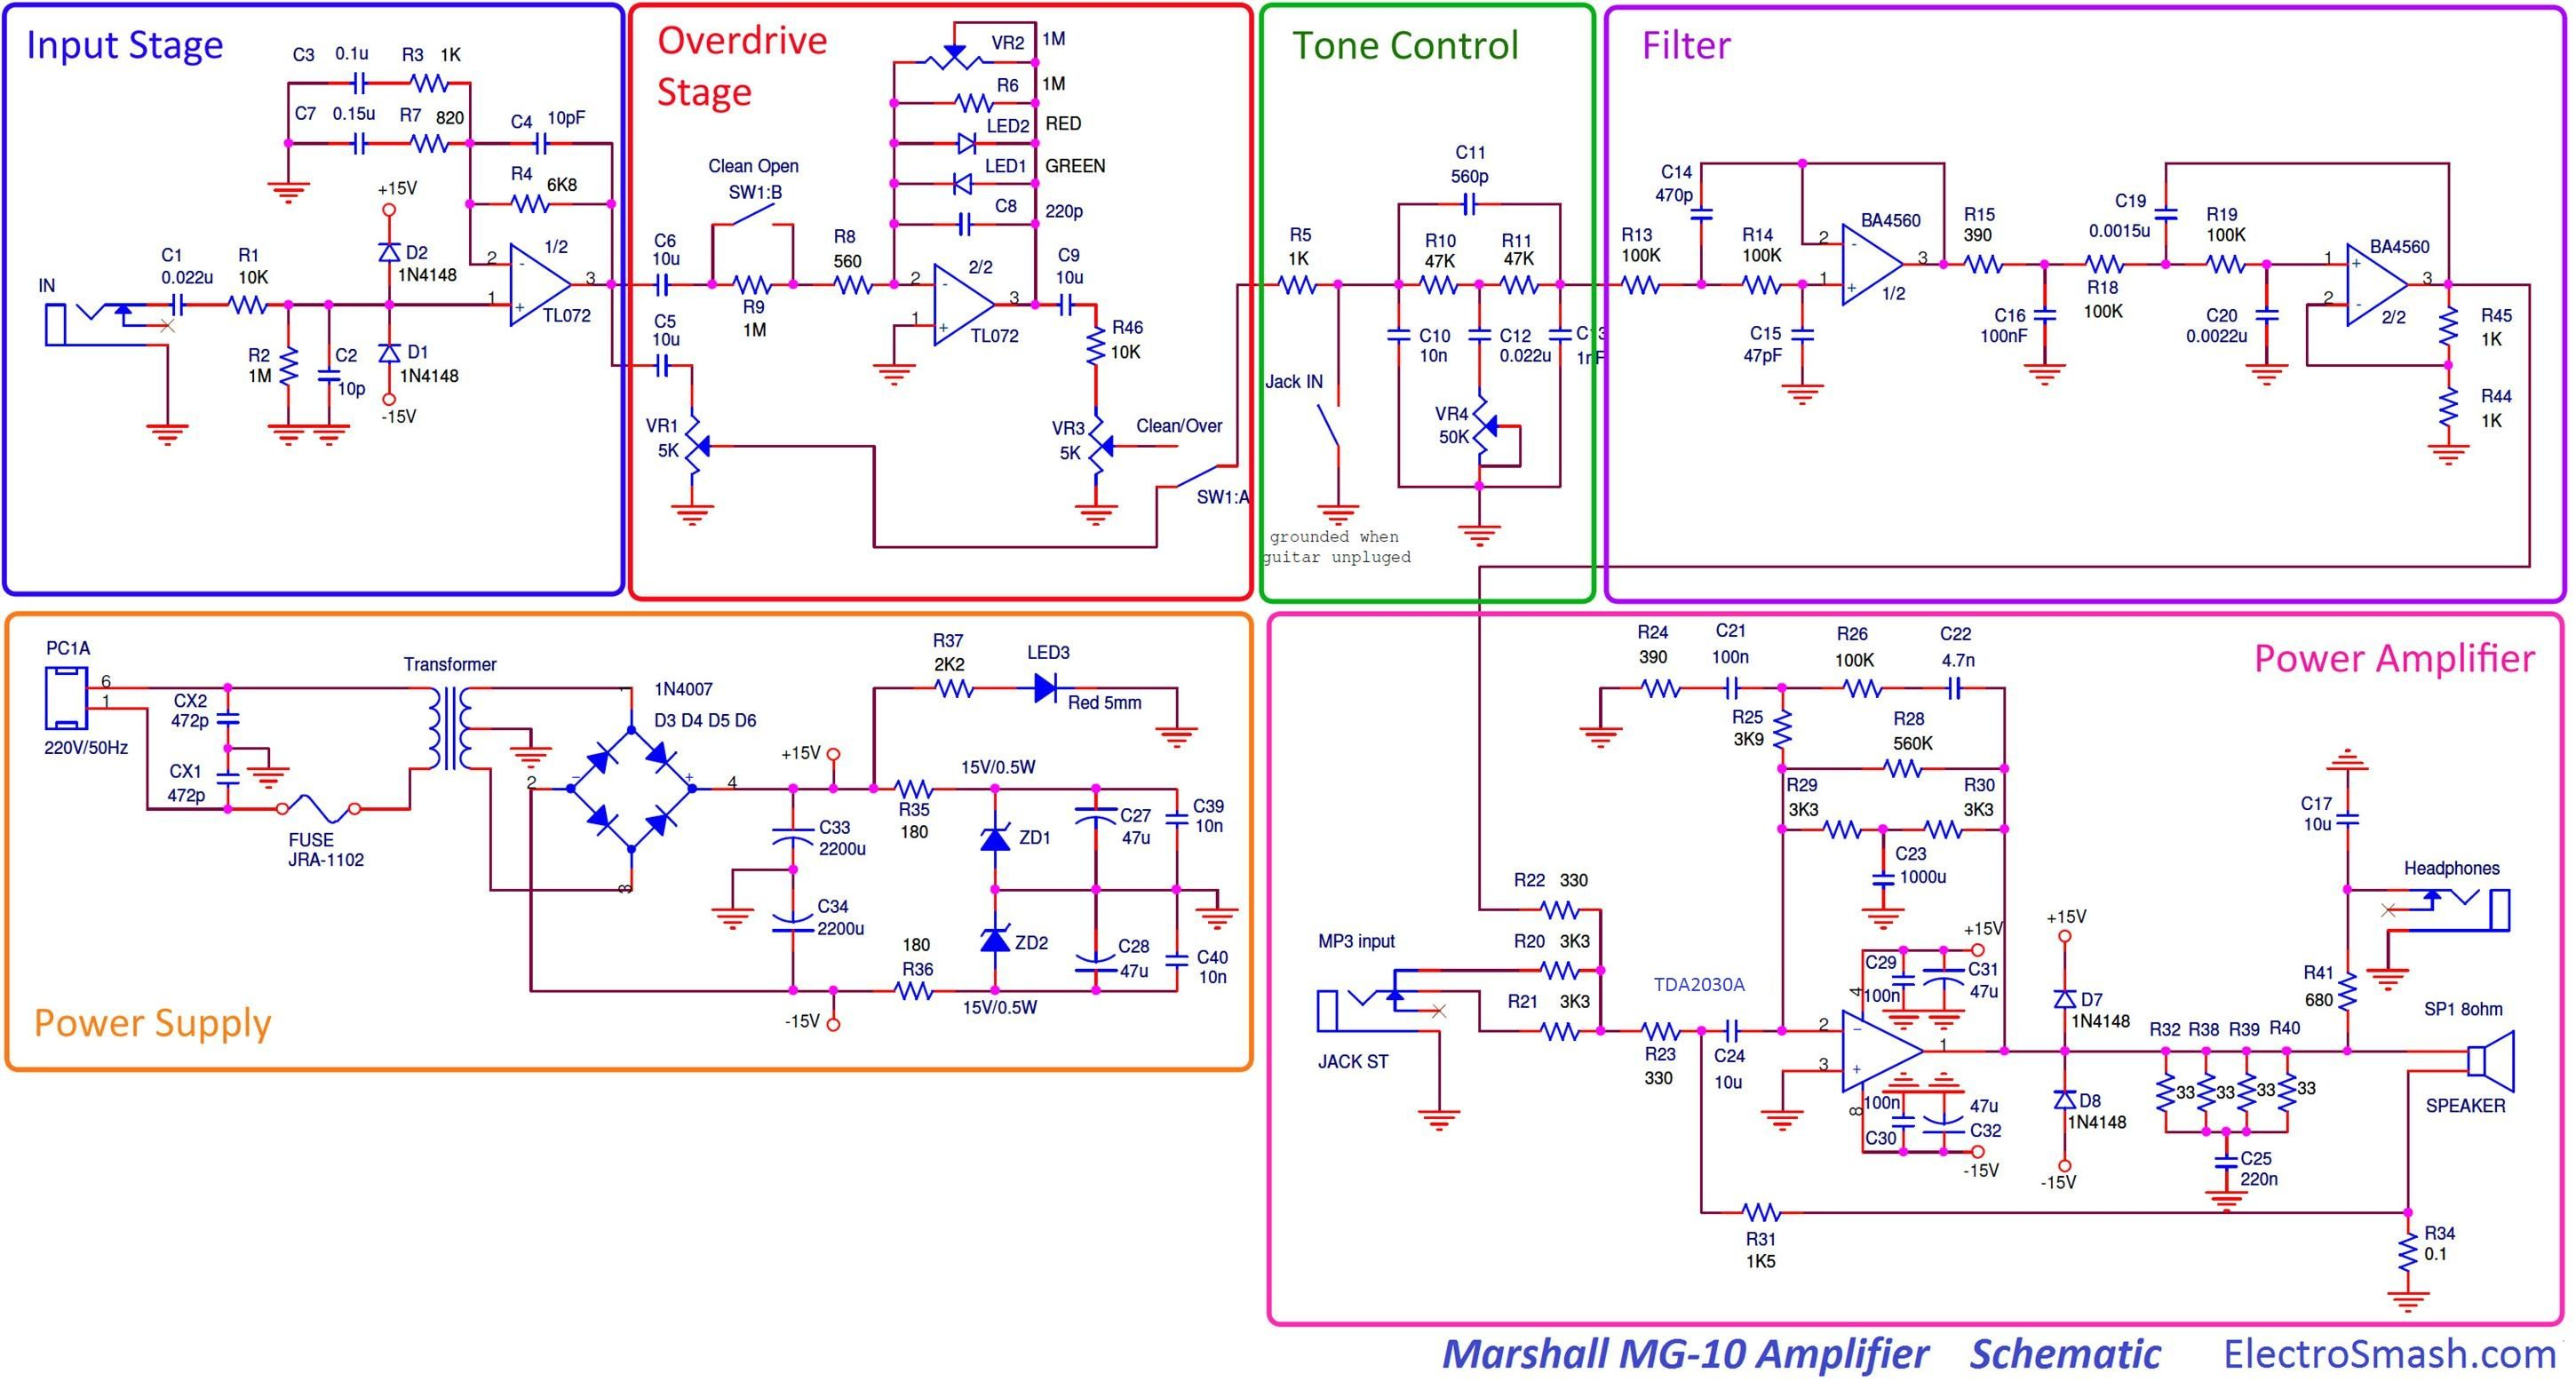 Marshall Mg10 Schematic Blocks Amplifiers Marshalls Guitar Amp Diy Boombox Wiring Diagram Tabs Amplifier Frequency Response